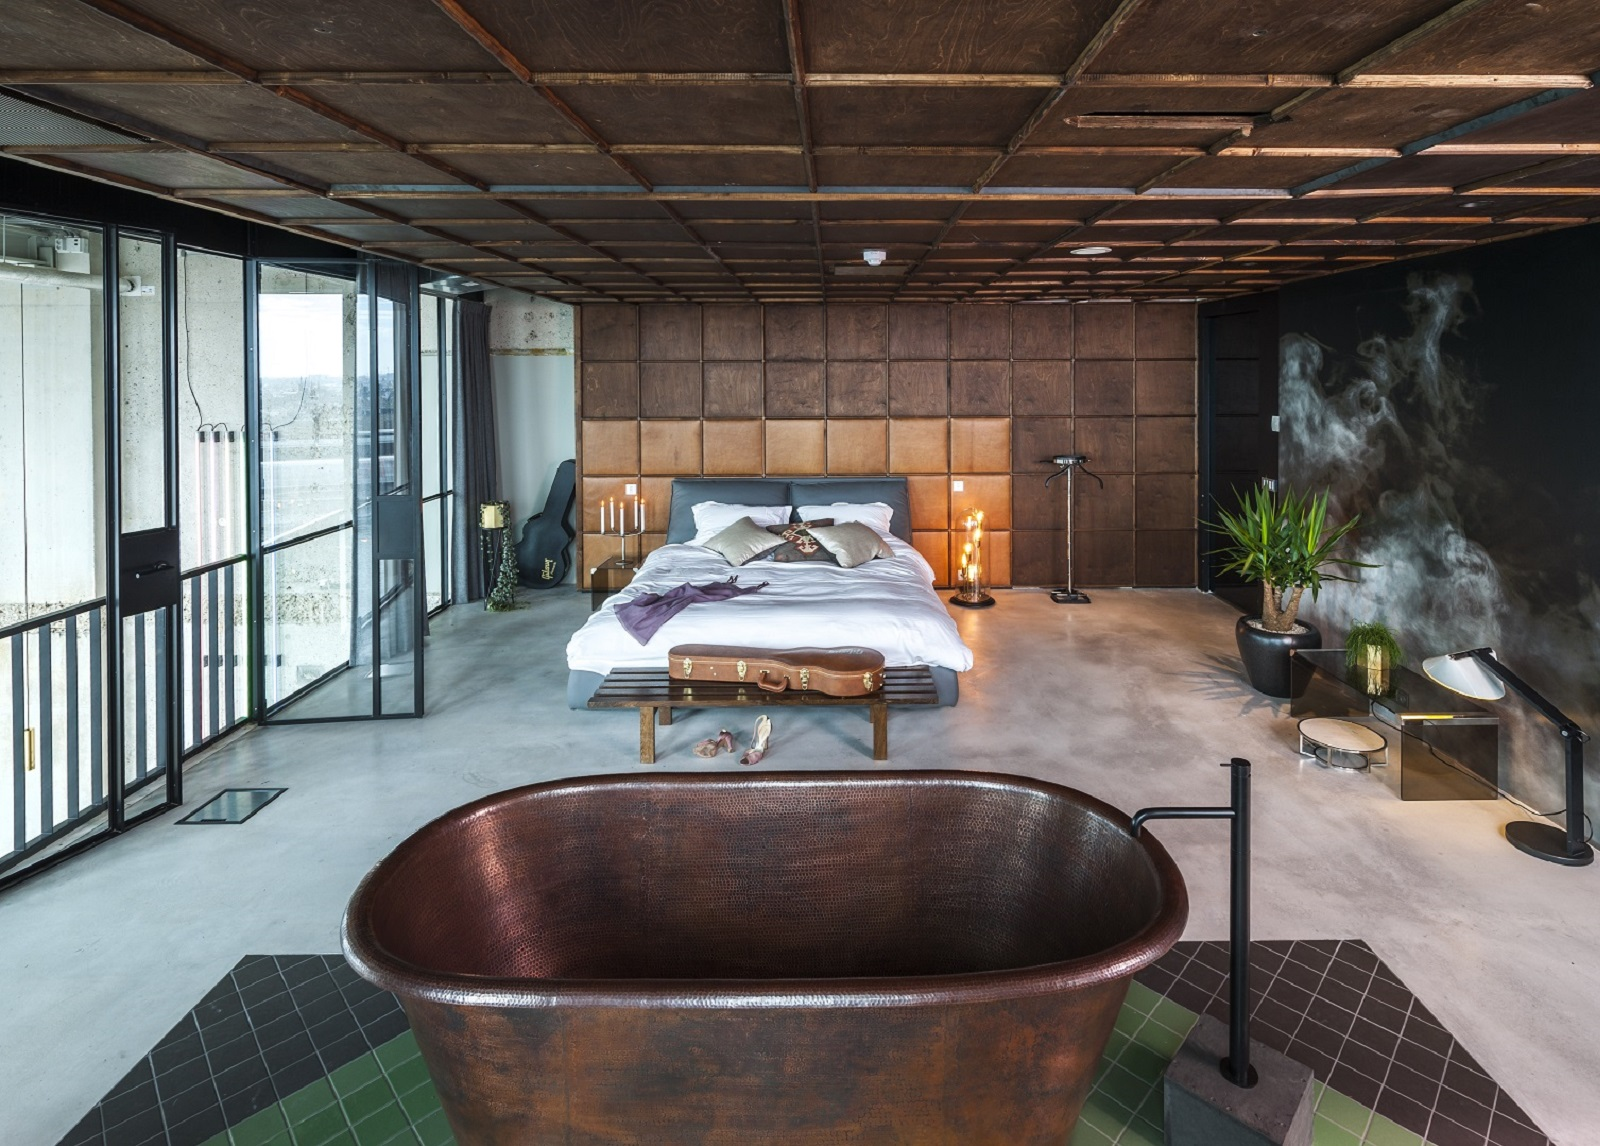 Binnen in a 39 dam toren the loft is spectaculaire for Interieur design amsterdam